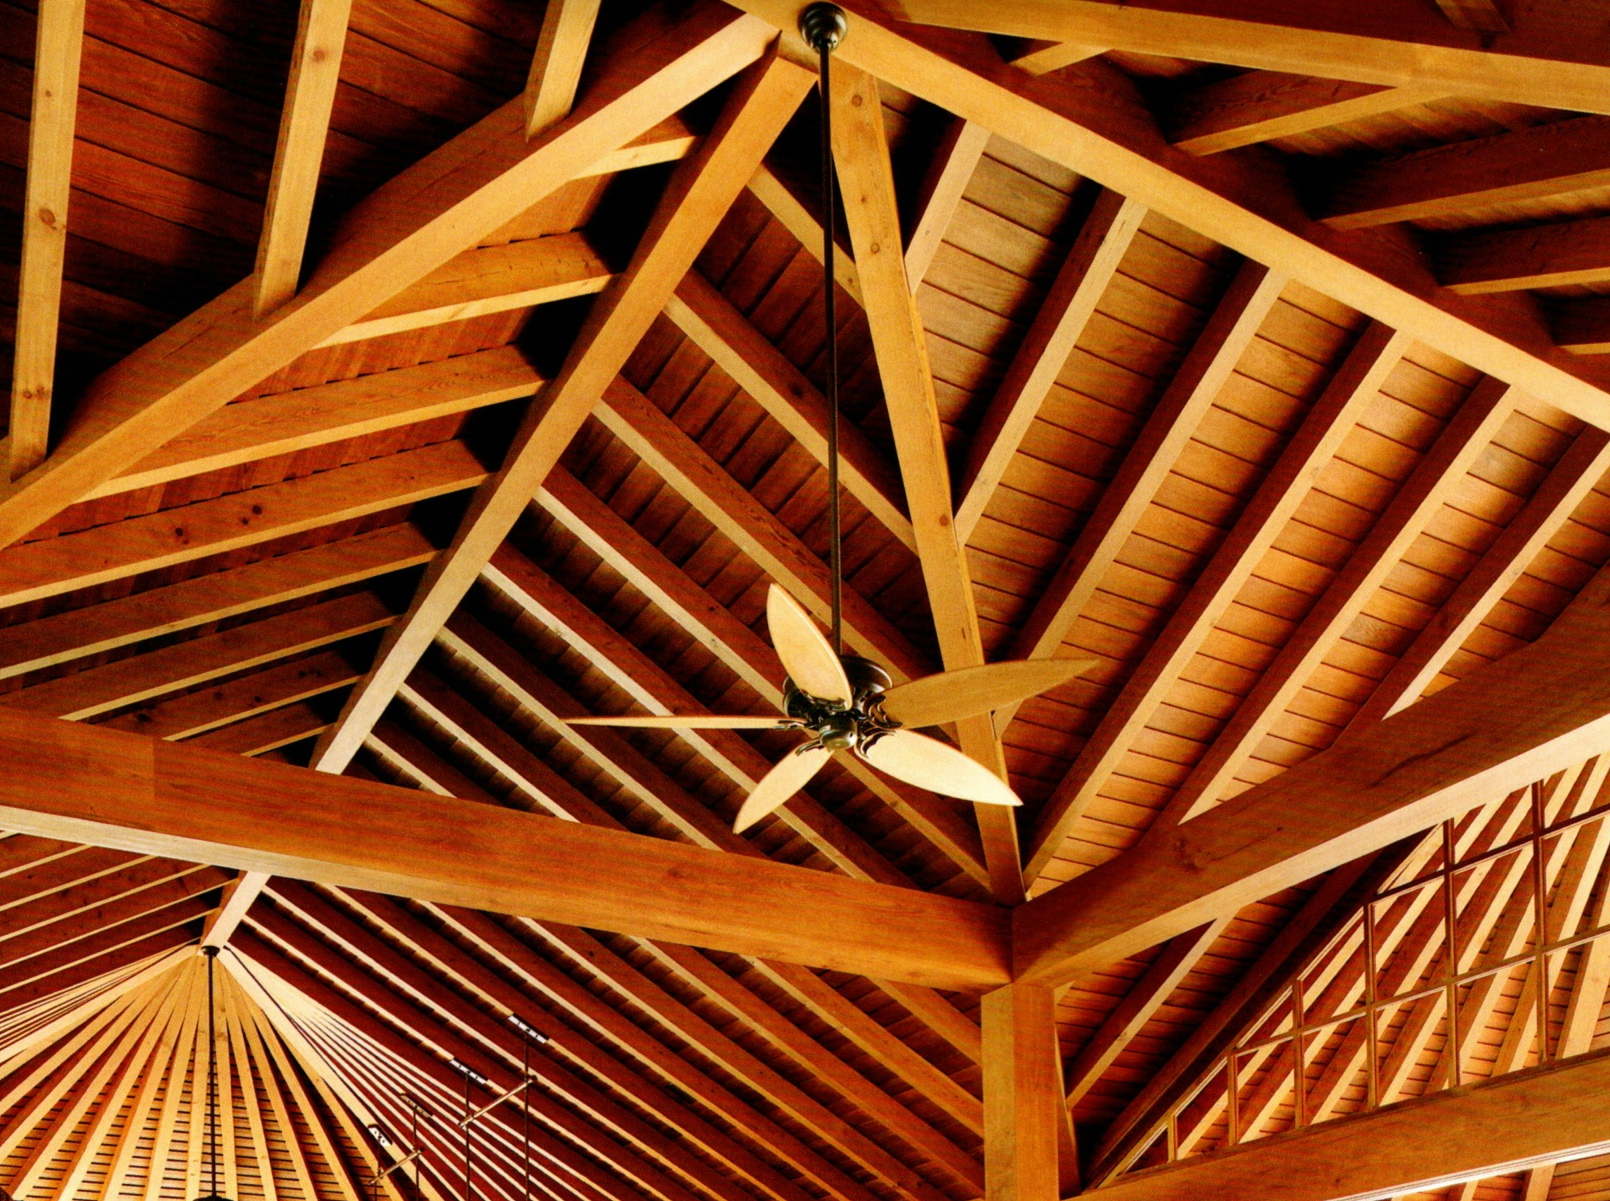 Fire Retardant for wood ceiling rafters